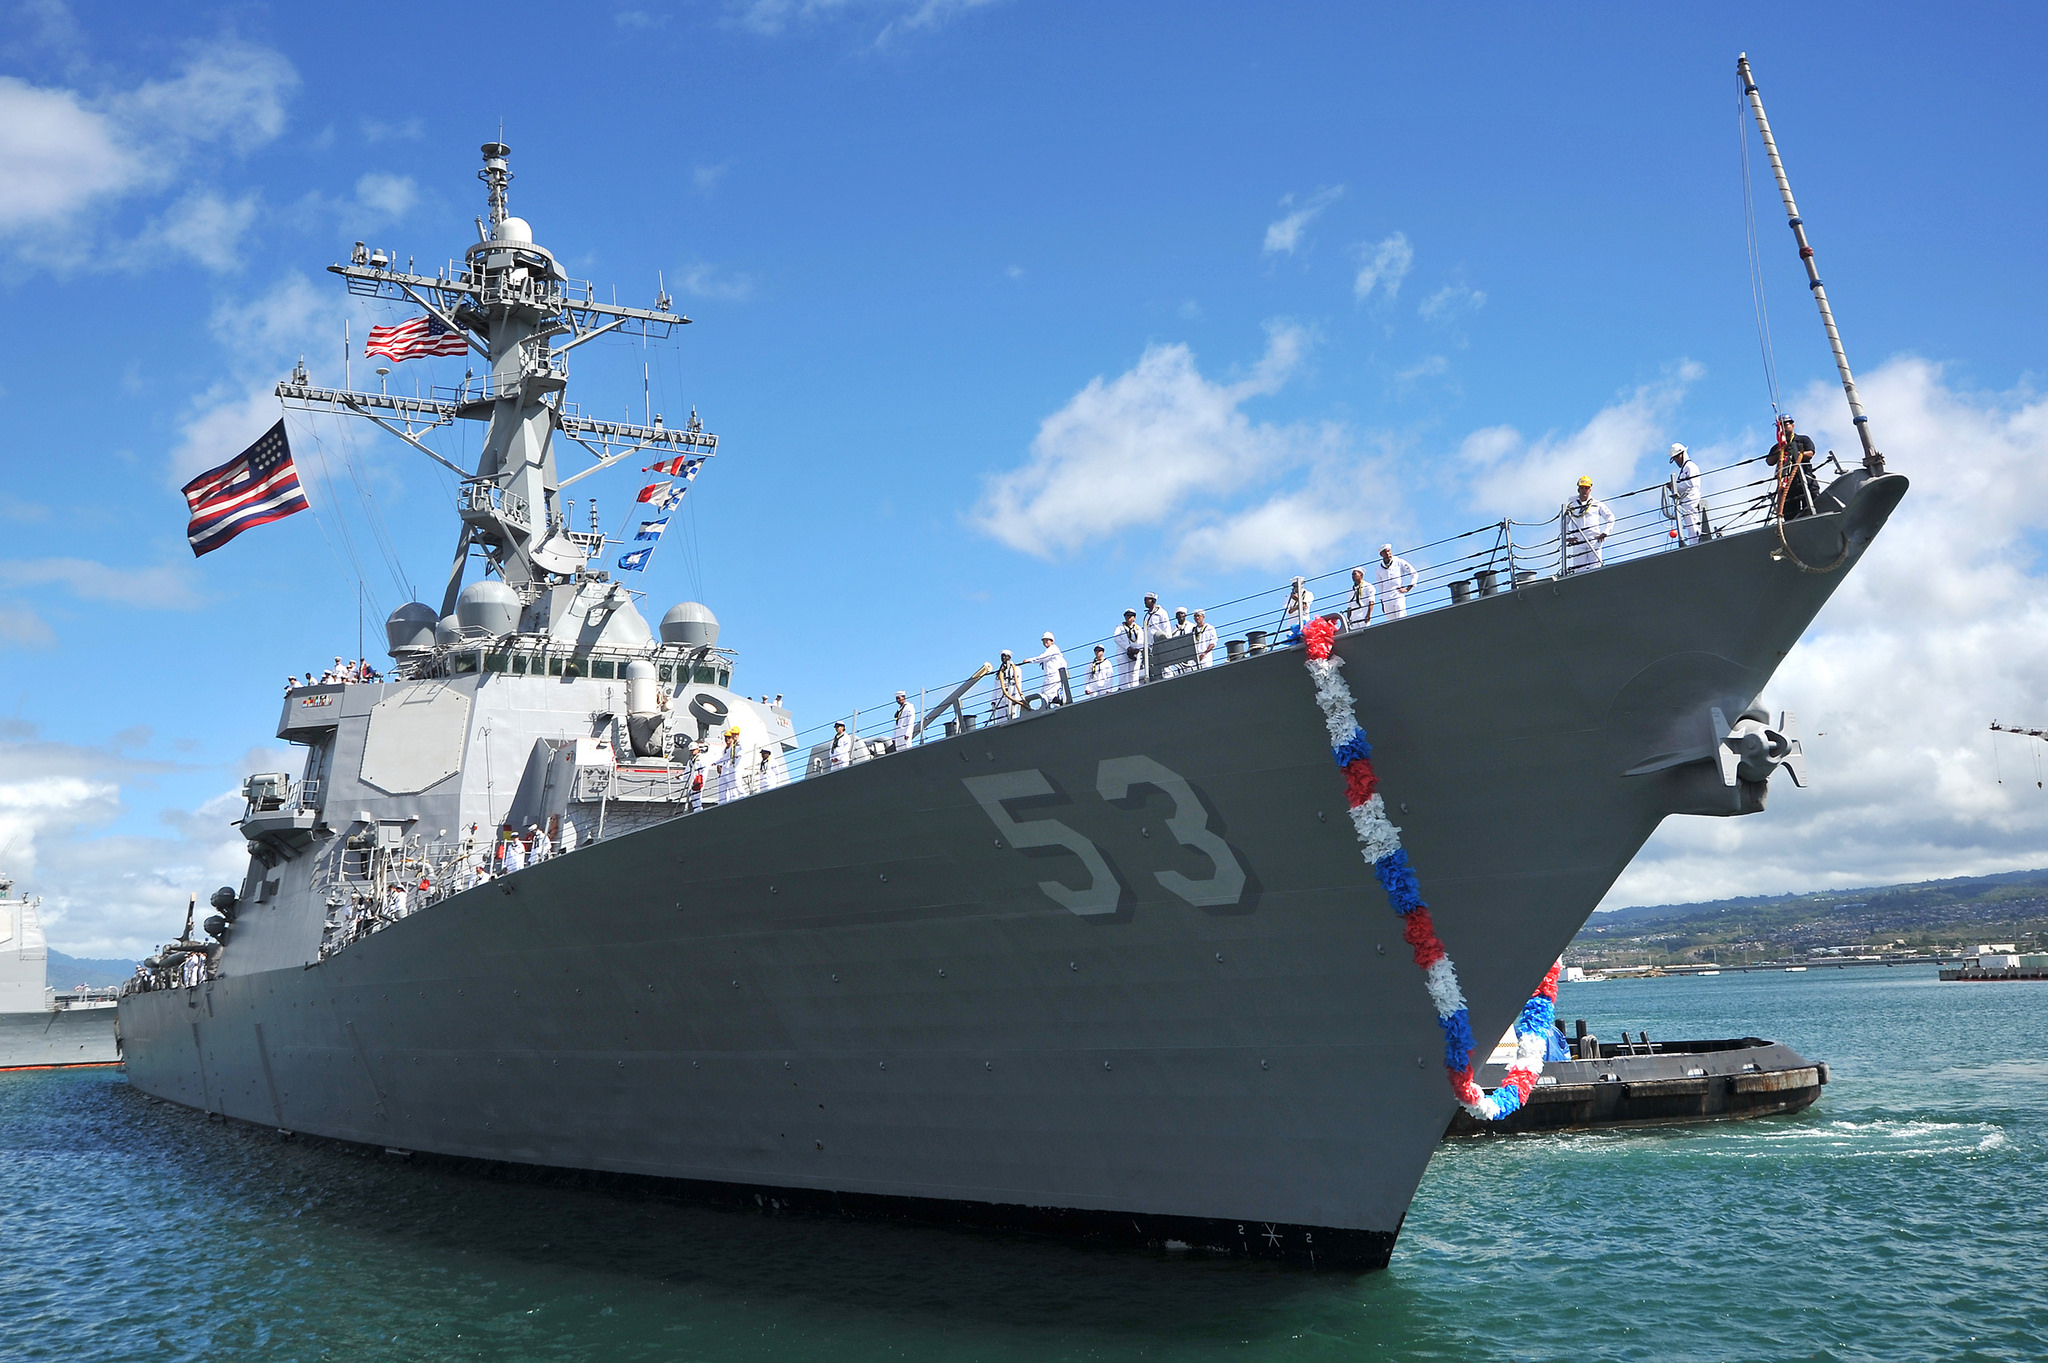 USS JOHN PAUL JONES DDG-53 Einlaufen Pearl Harbor am 15.08.2014 Bild: U.S. Navy